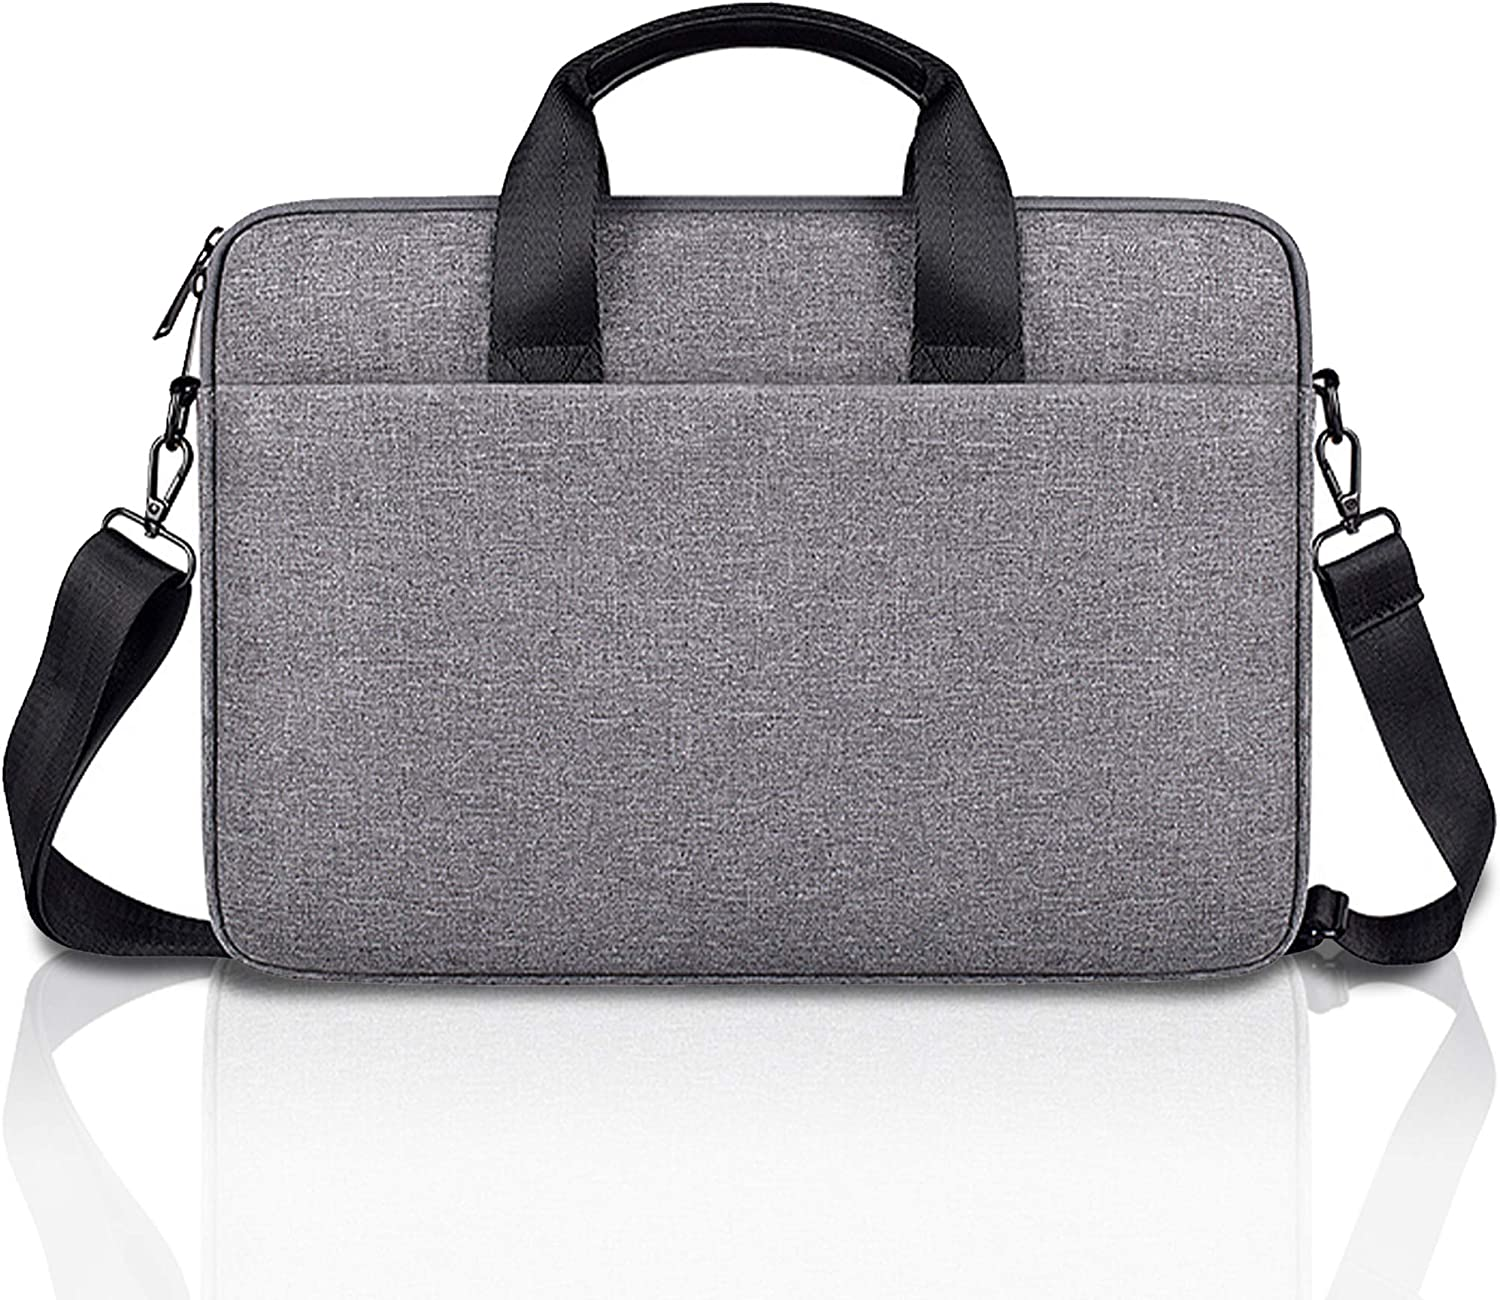 "E.YOMOQGG Laptop Case Laptop Shoulder Bag, Laptop Sleeve Case with Shoulder Strap, Notebook Briefcase 13 14 15"" Black/Grey"